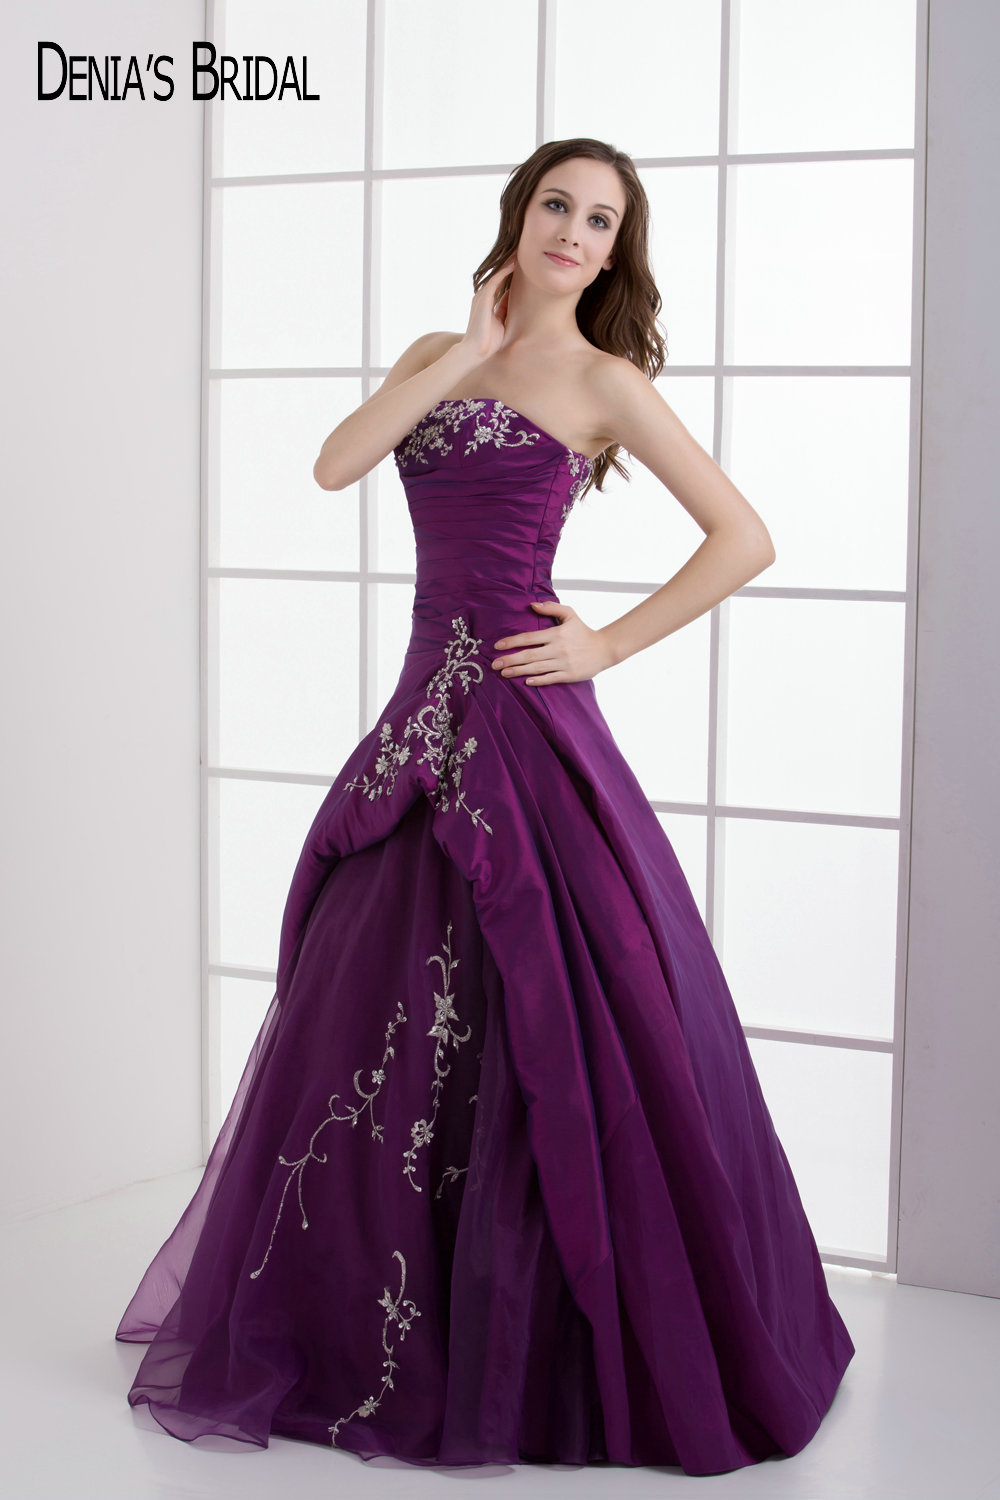 High Quality Wholesale purple evening dresses from China purple ...